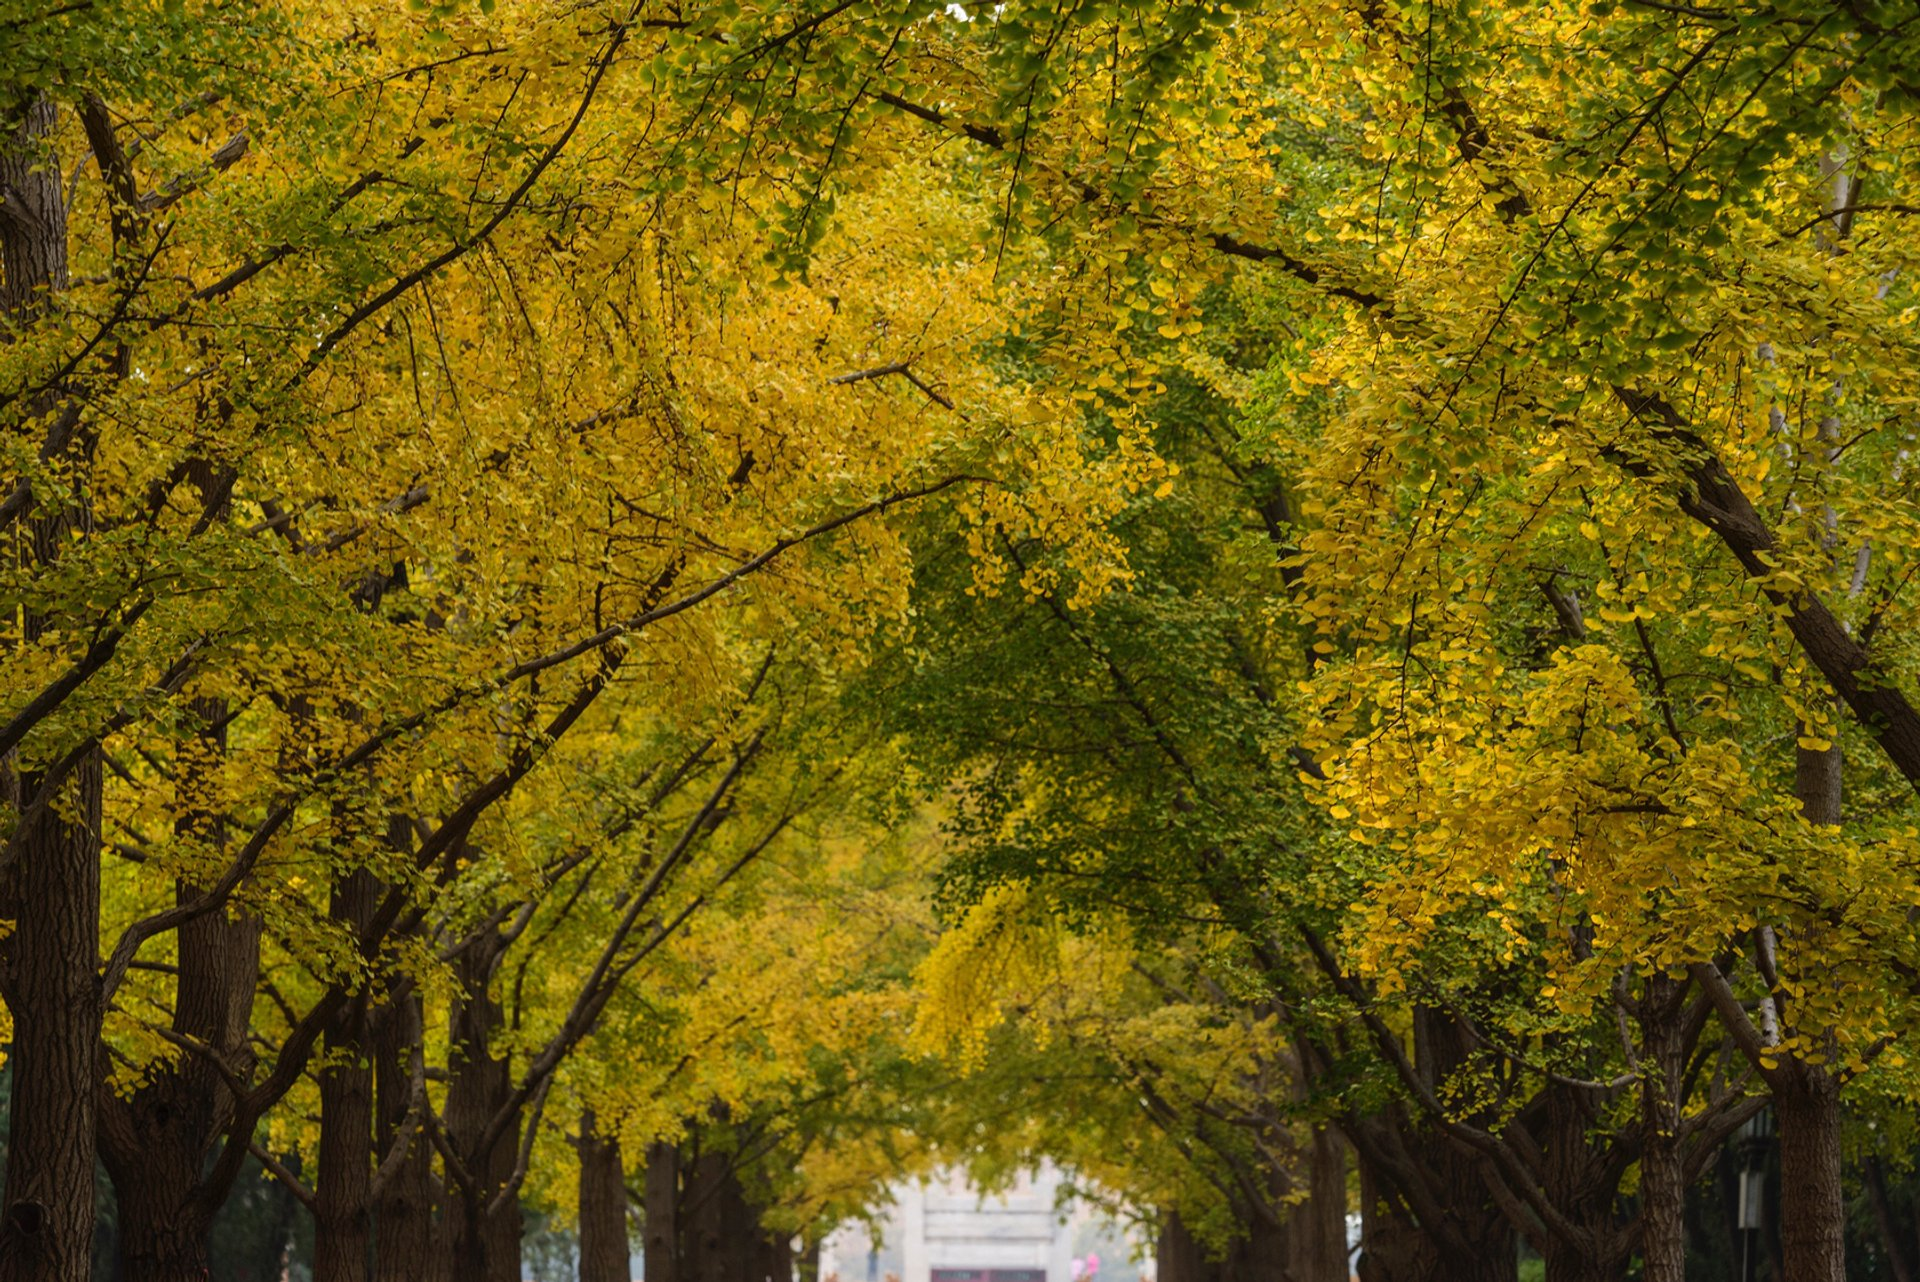 Ginkgo at Ditan Park on October 30 2020